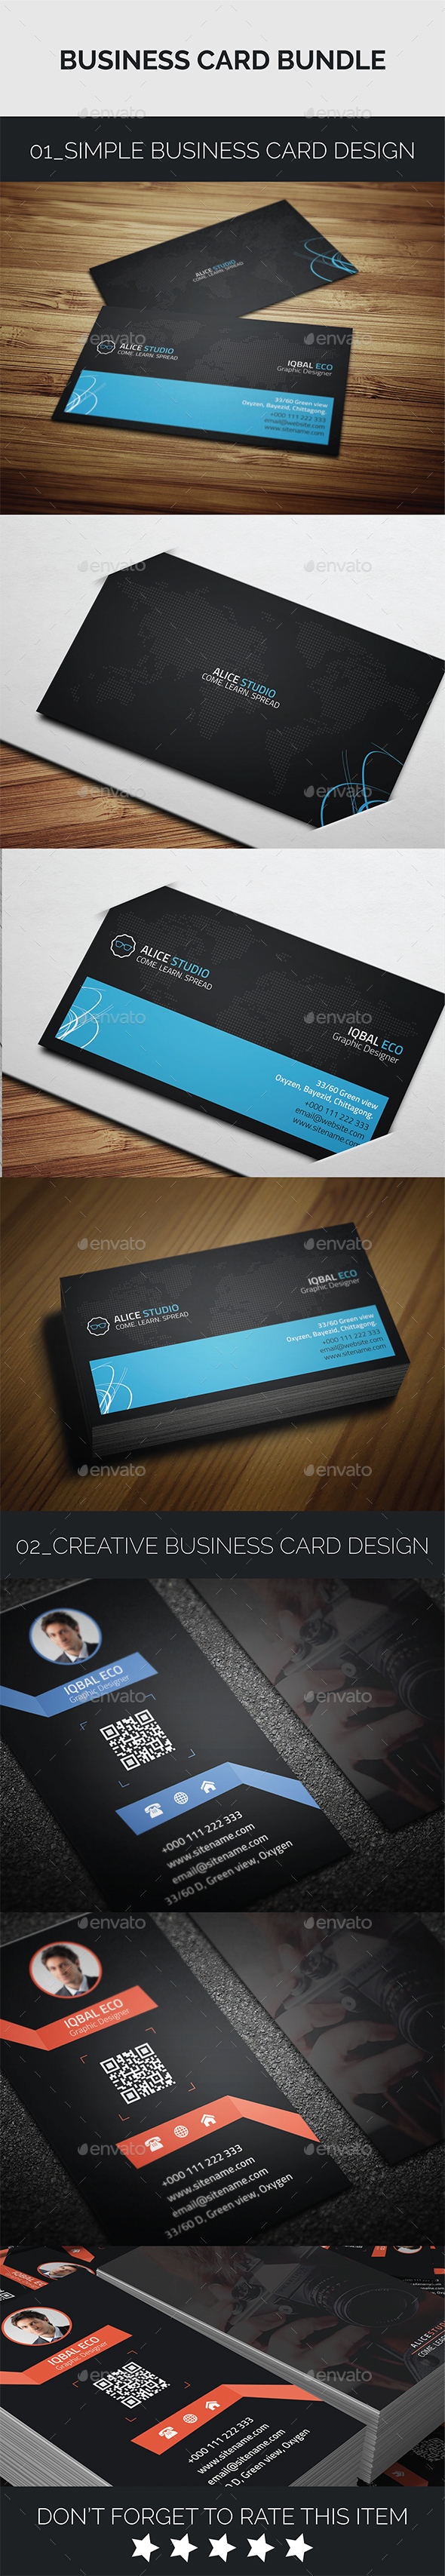 Business Card Bundle 2in1 - Creative Business Cards